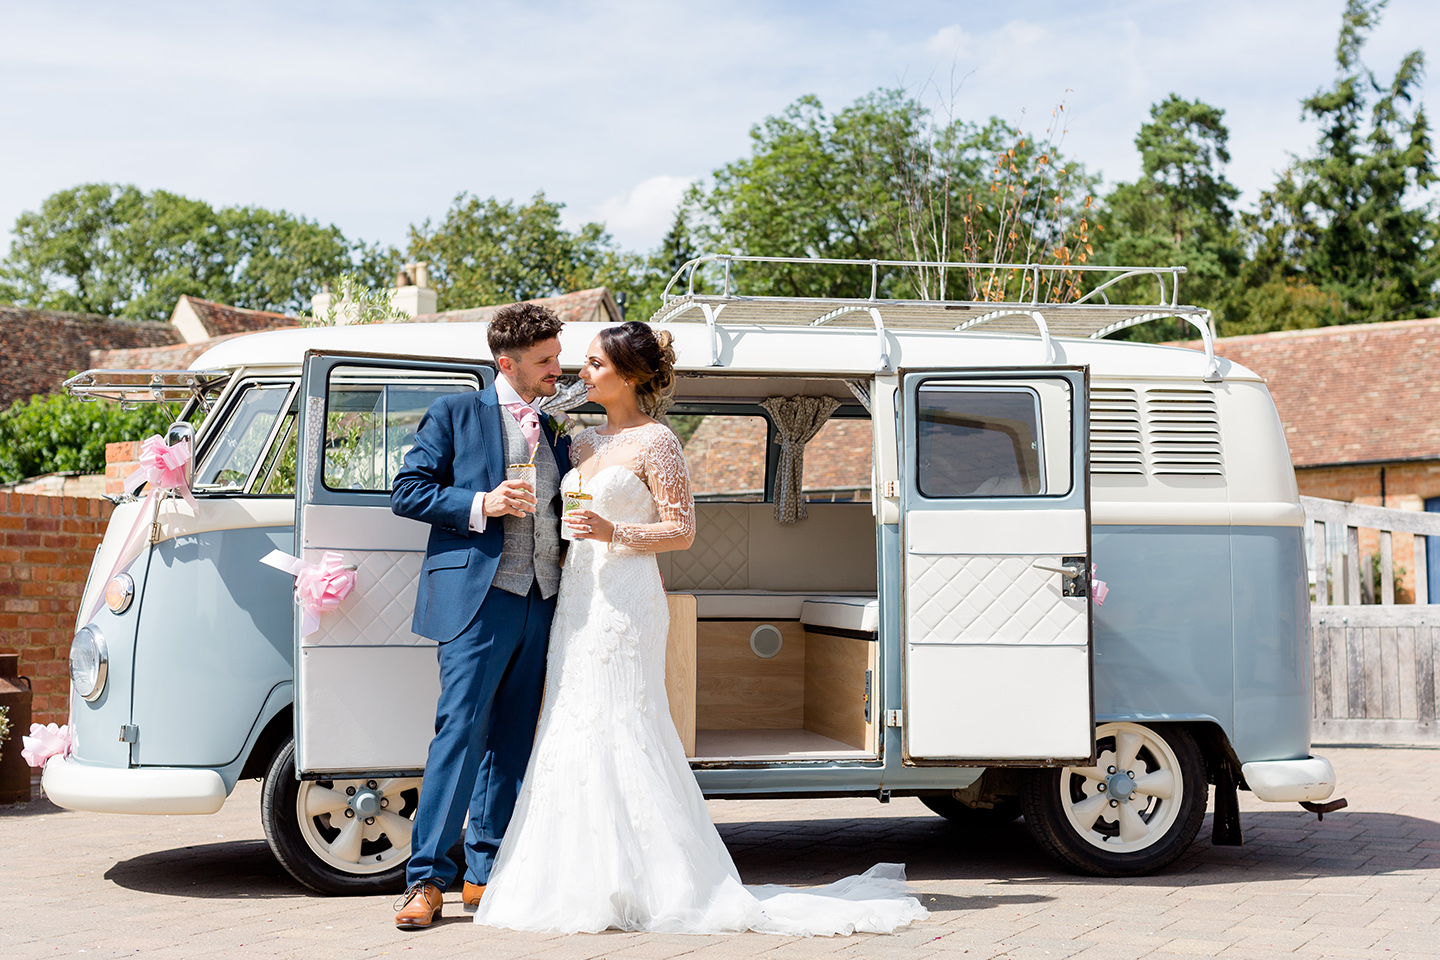 The newlyweds stand infront of a VW campervan wedding car after their summer wedding ceremony at Bassmead Manor Barns